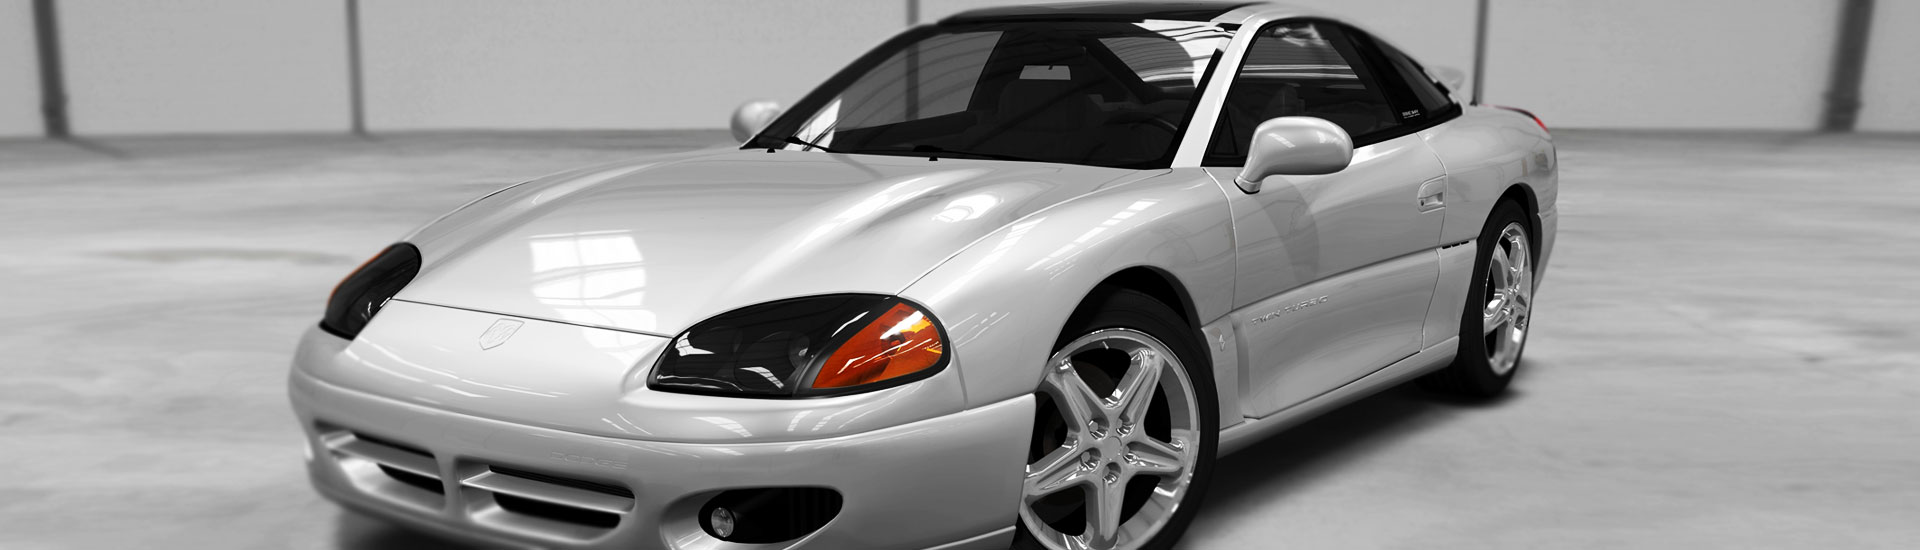 Dodge Stealth Window Tint